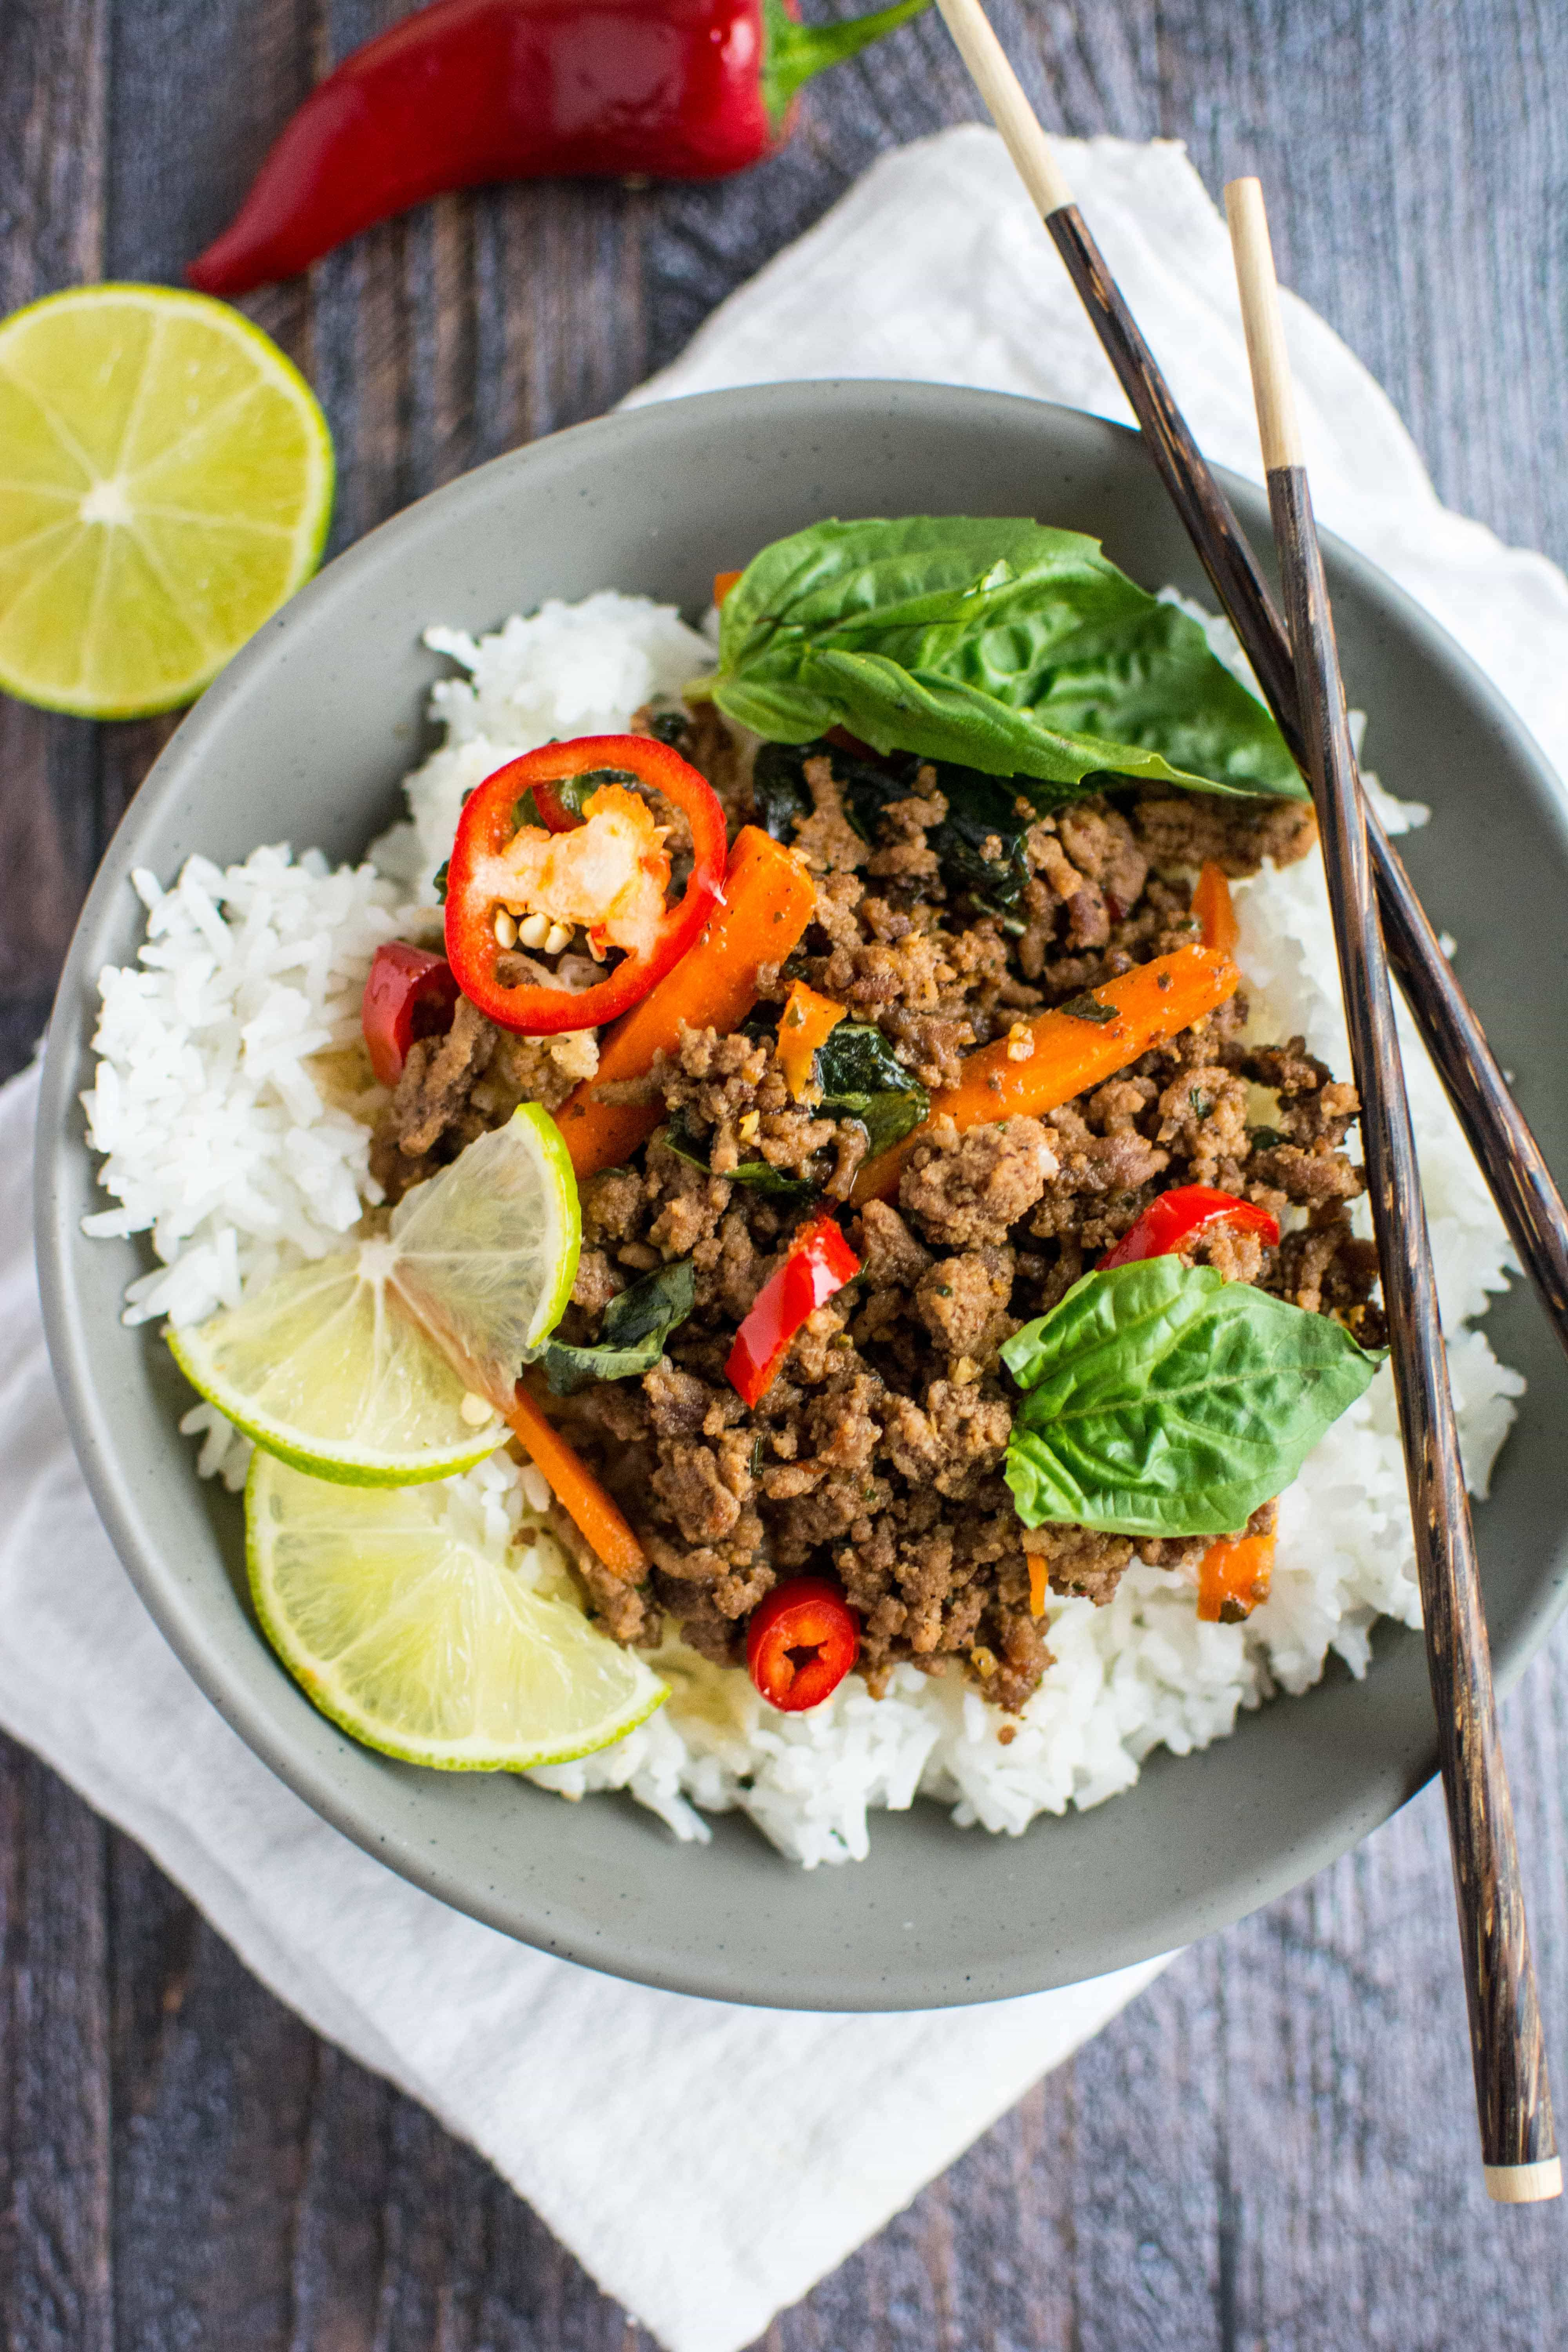 Quick Fix Meal Thai Basil Beef Slow Cooker Gourmet